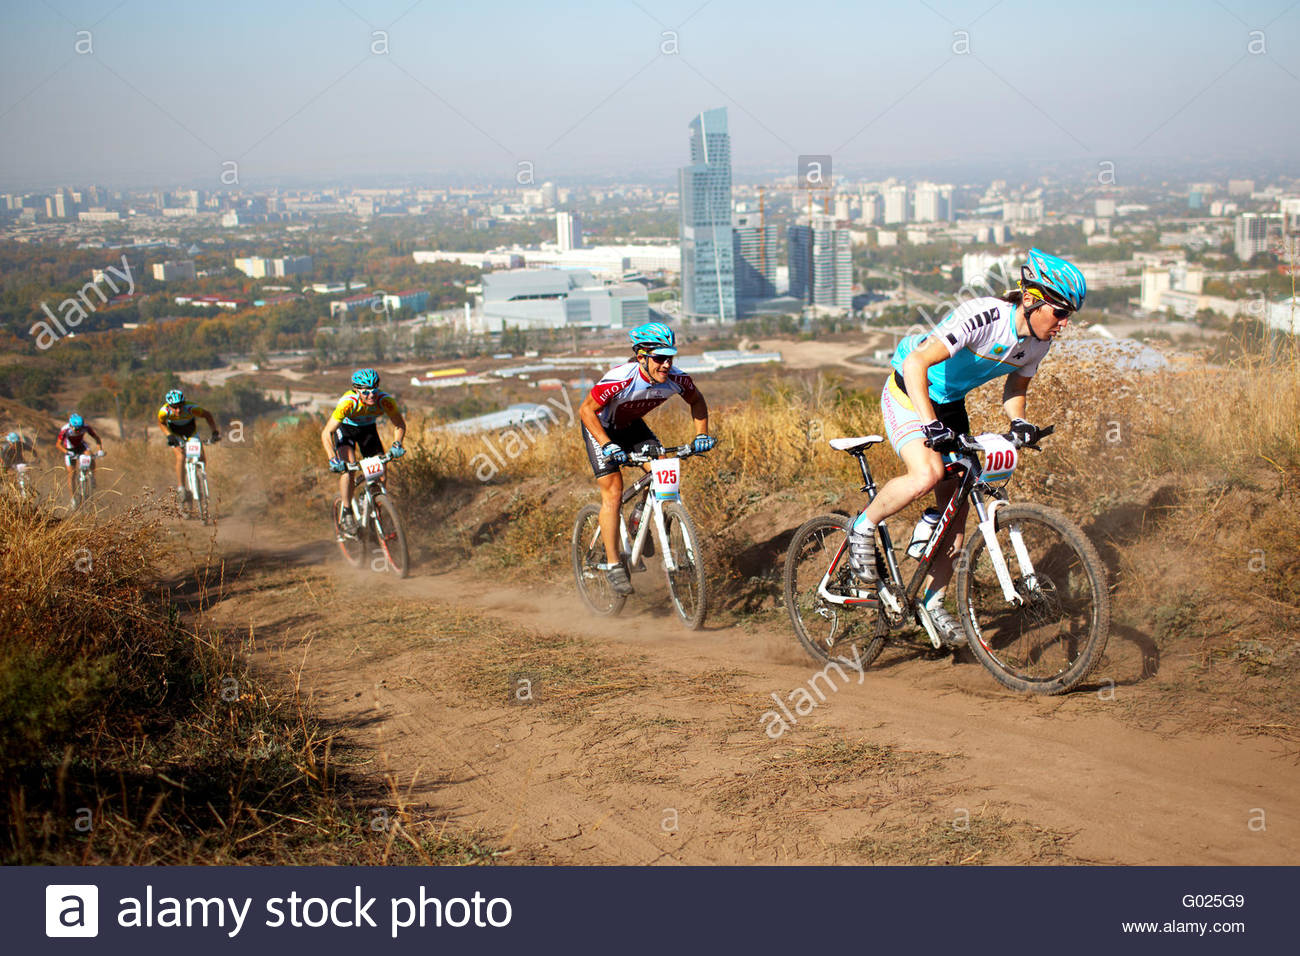 Mountain bike competition on rural road in megapolis - Stock Image